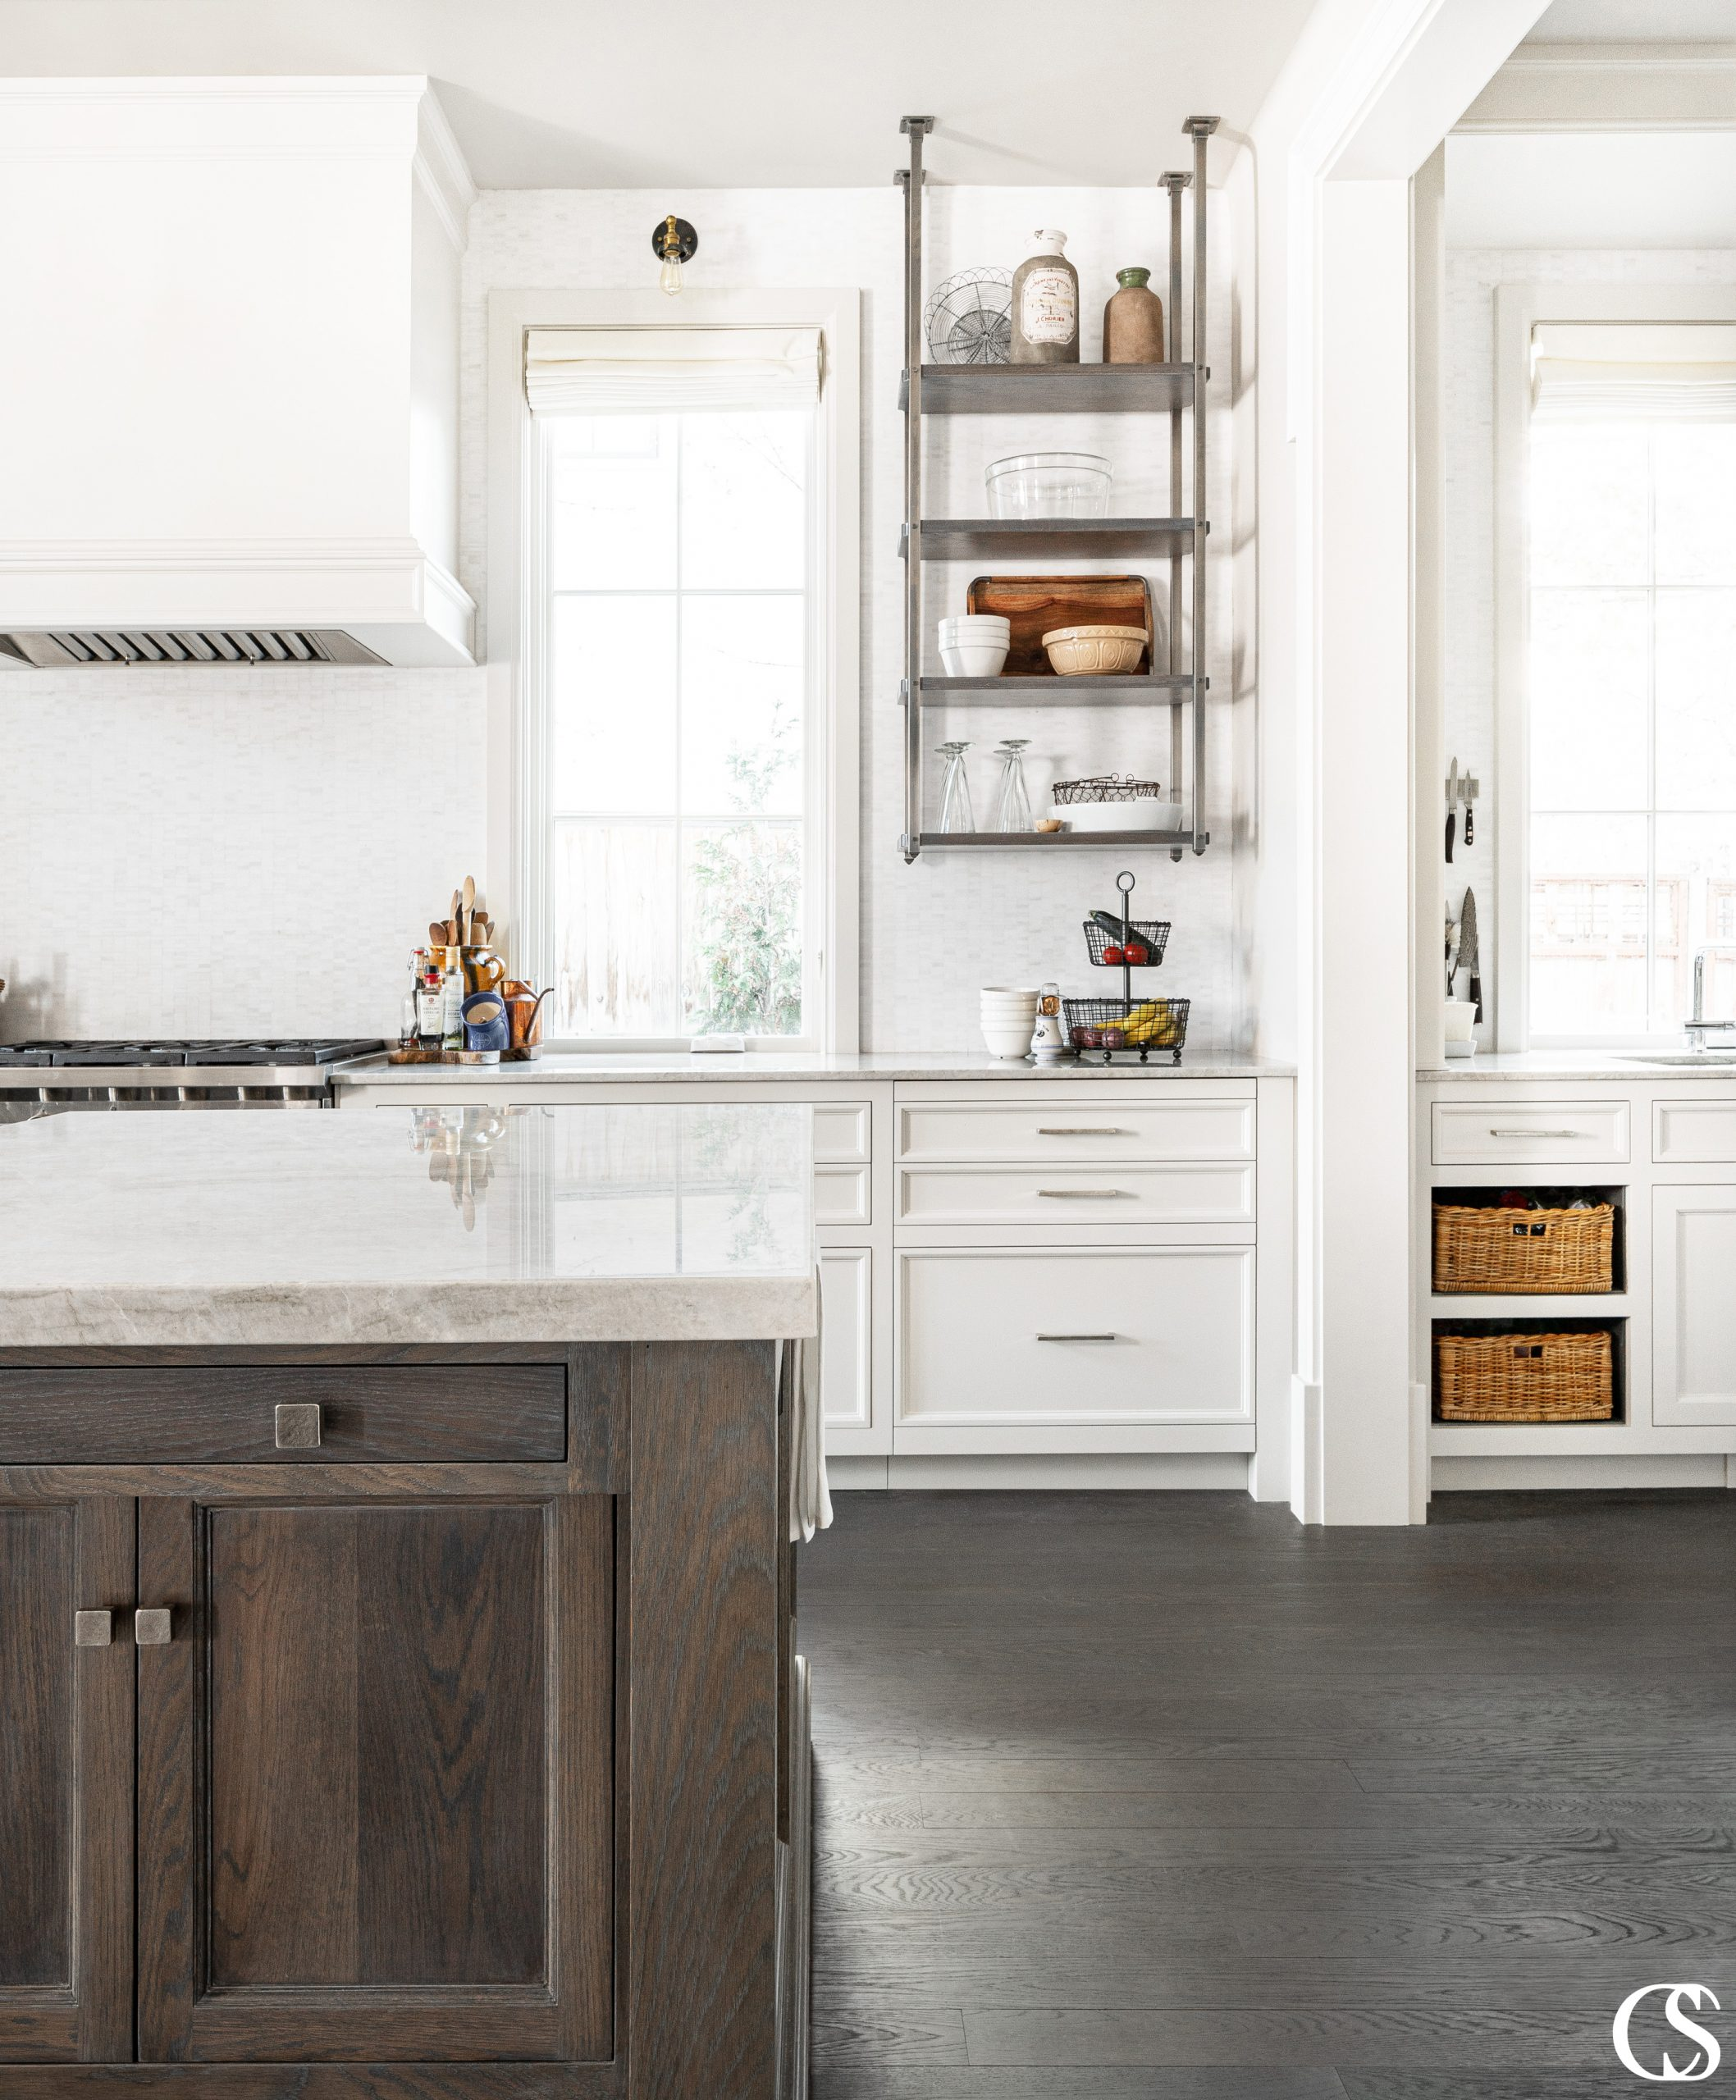 A custom oven hood—also known as a custom range hood cover—can play multiple important roles at the center of your kitchen.